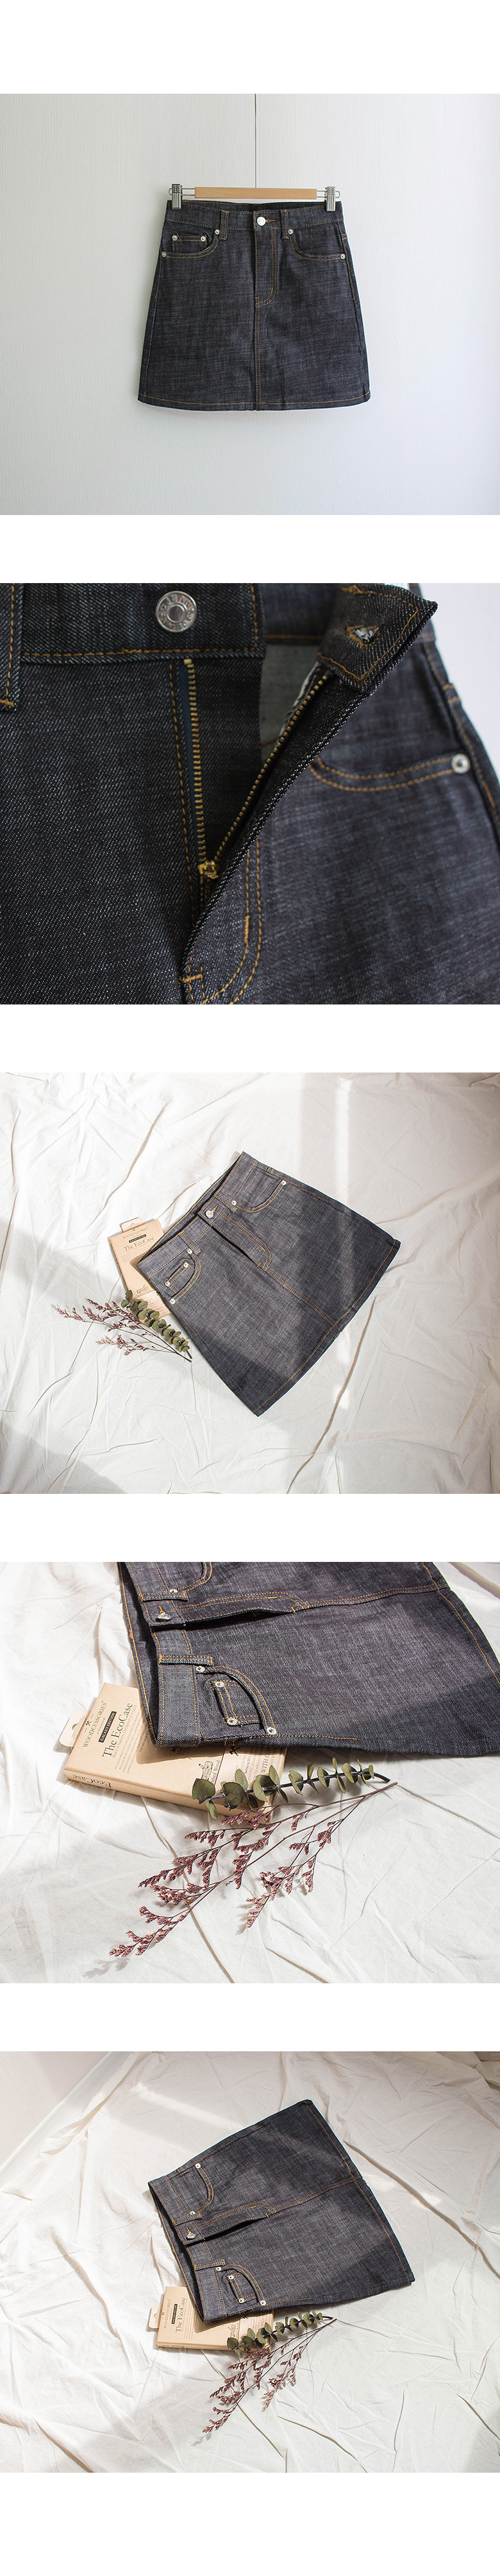 Diego stitched denim mini skirt